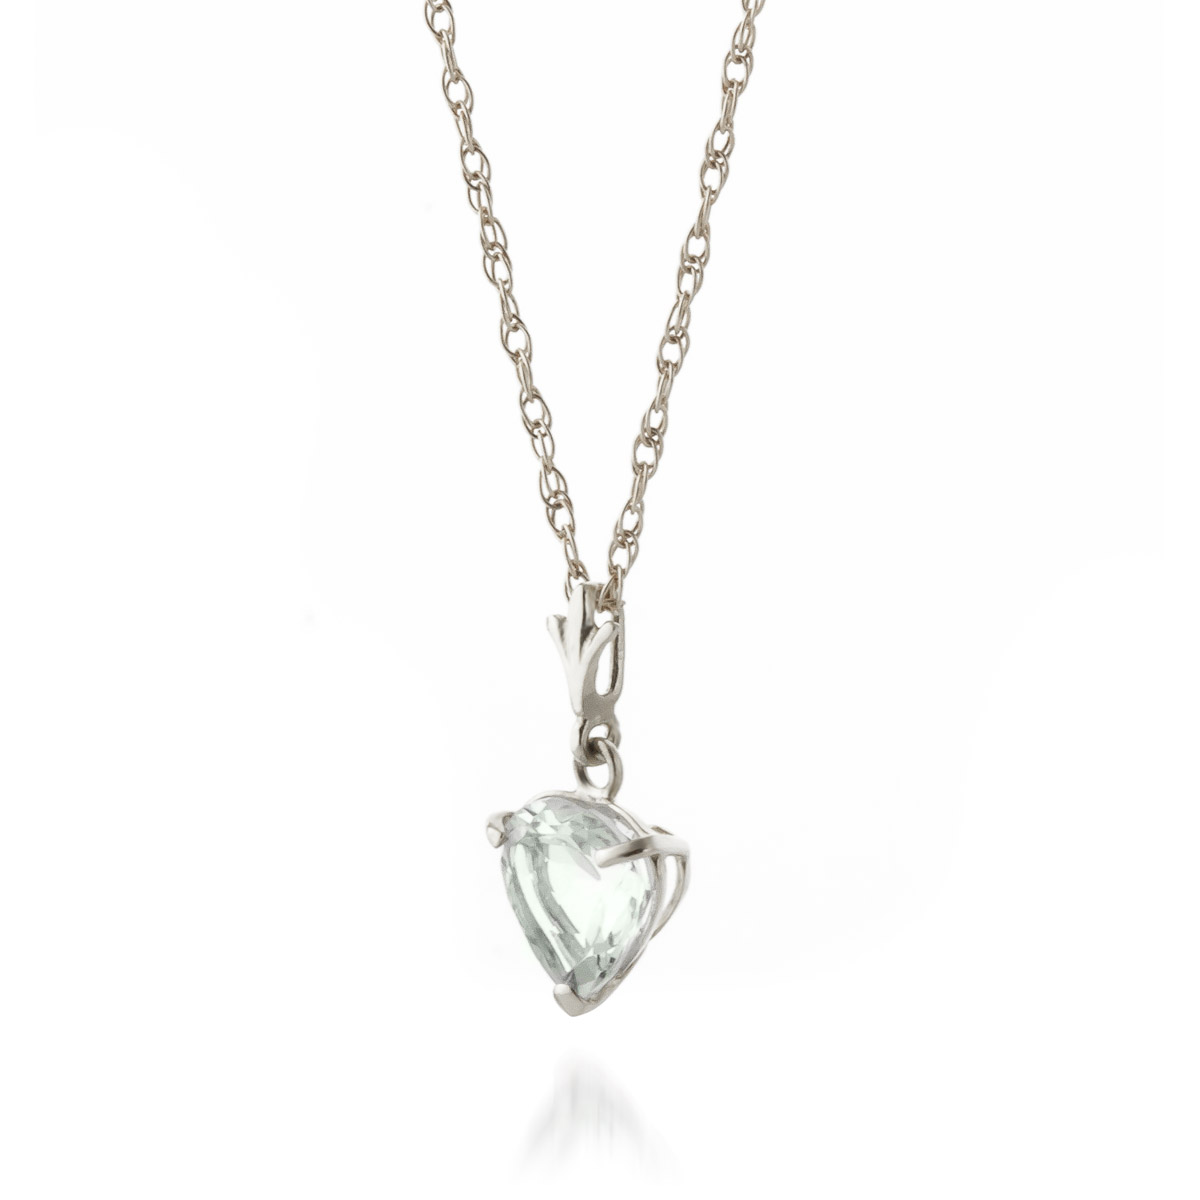 Aquamarine Heart Pendant Necklace 1.15ct in 9ct White Gold